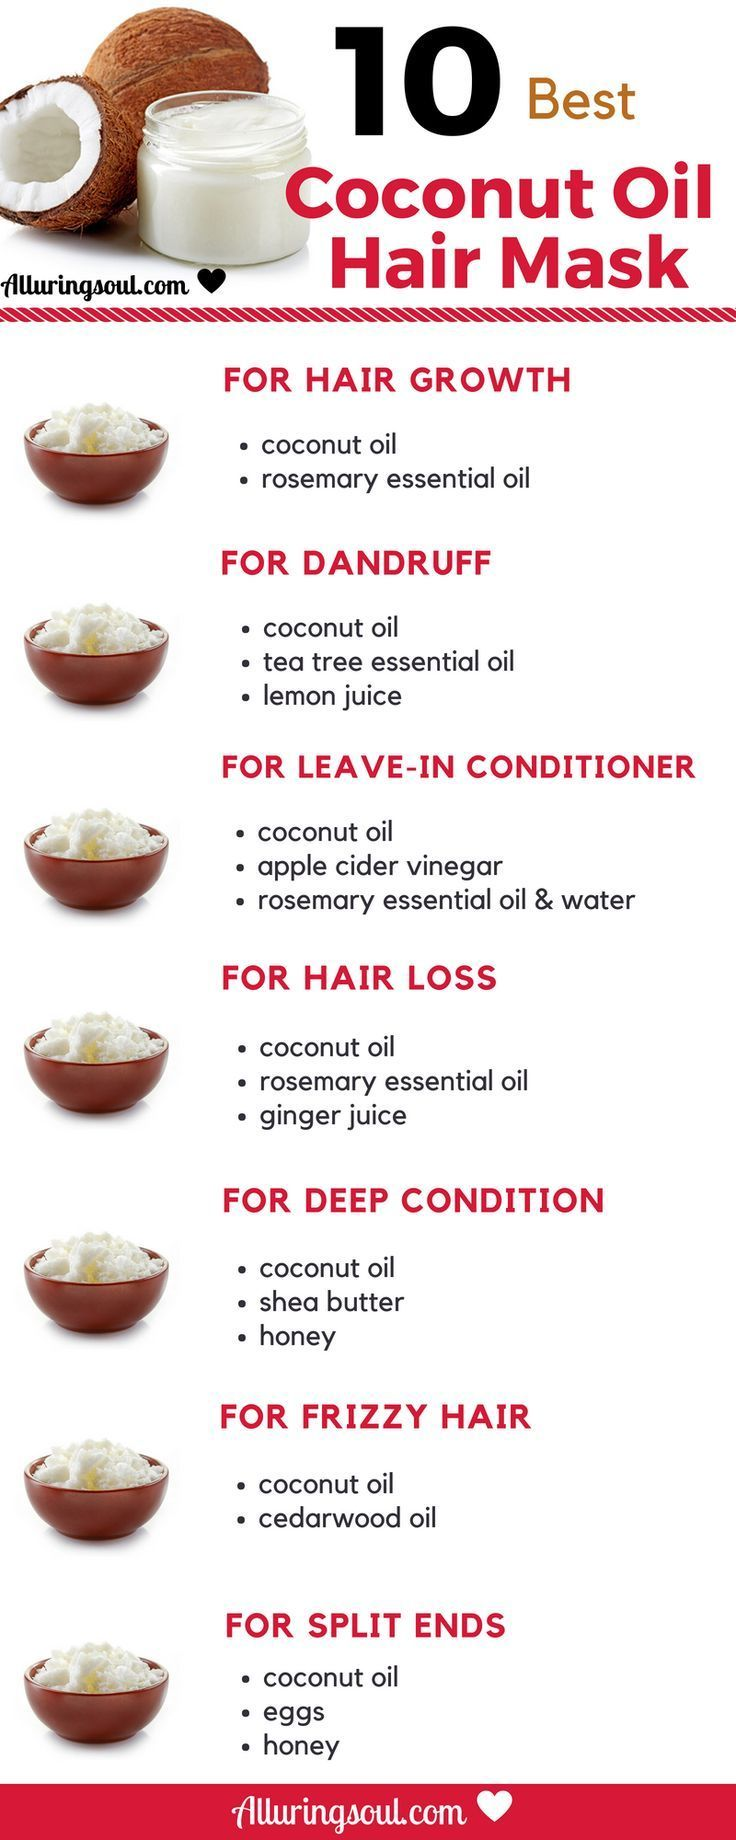 Coconut Oil is the best oil to grow beautiful, stronger and longer hair. Try the